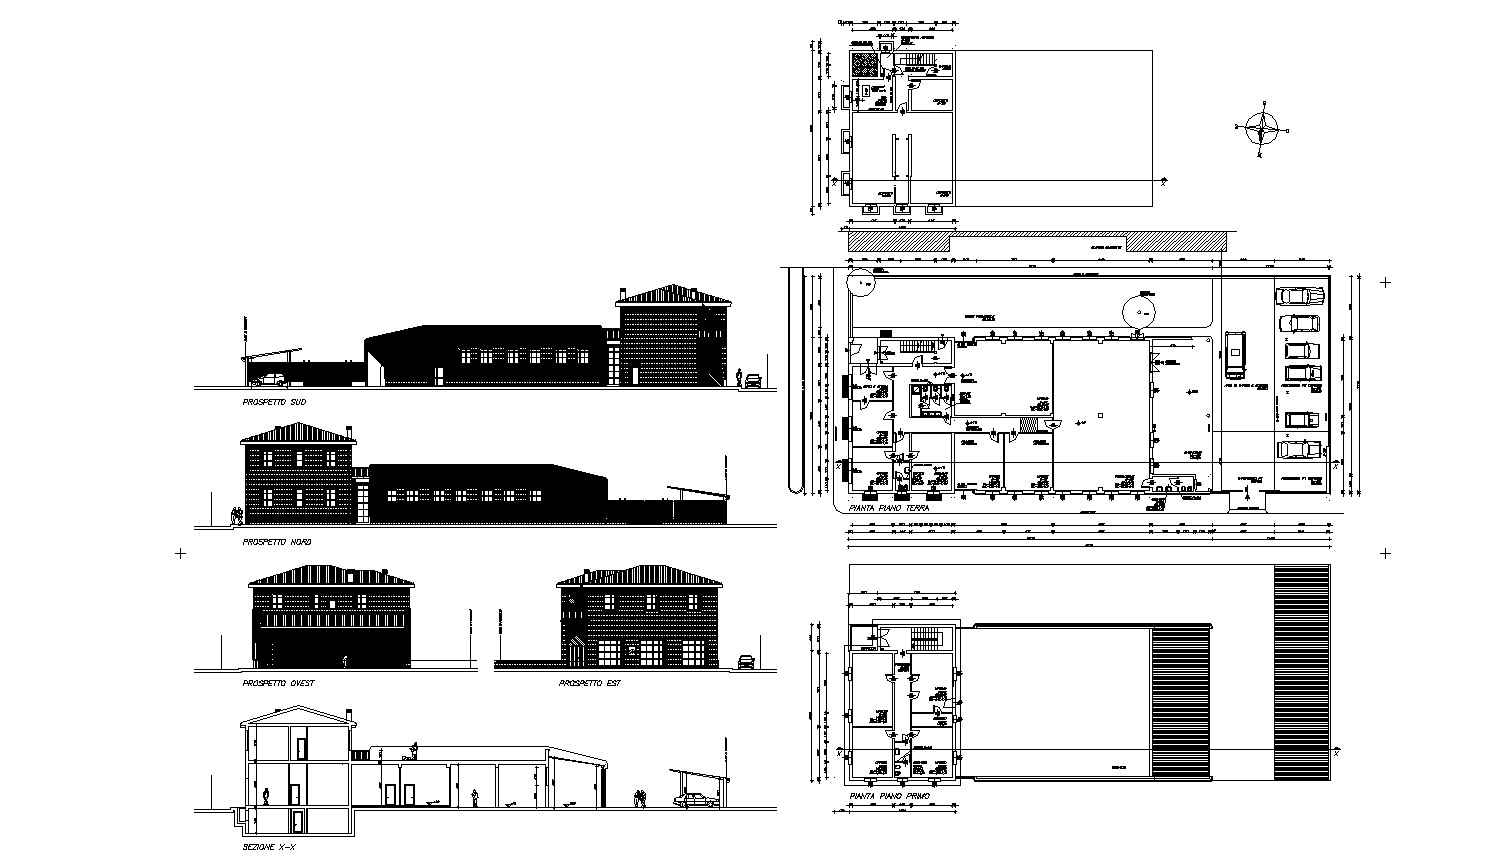 Architectural plan of Building with different section and elevation in dwg file